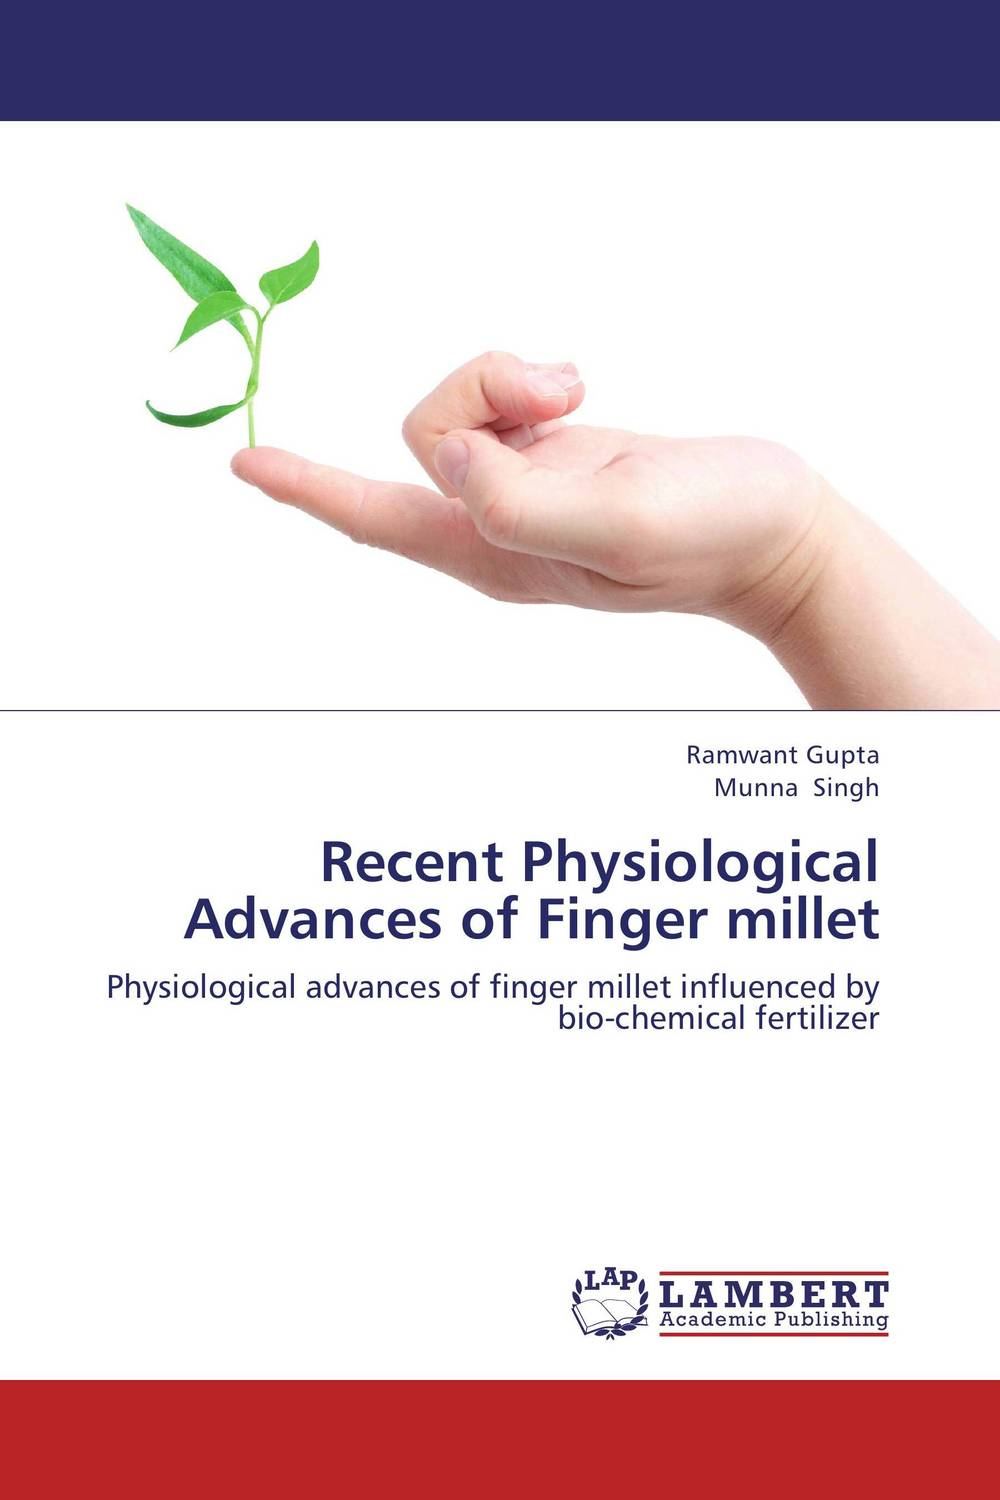 Recent Physiological Advances of Finger millet ramwant gupta and munna singh recent physiological advances of finger millet